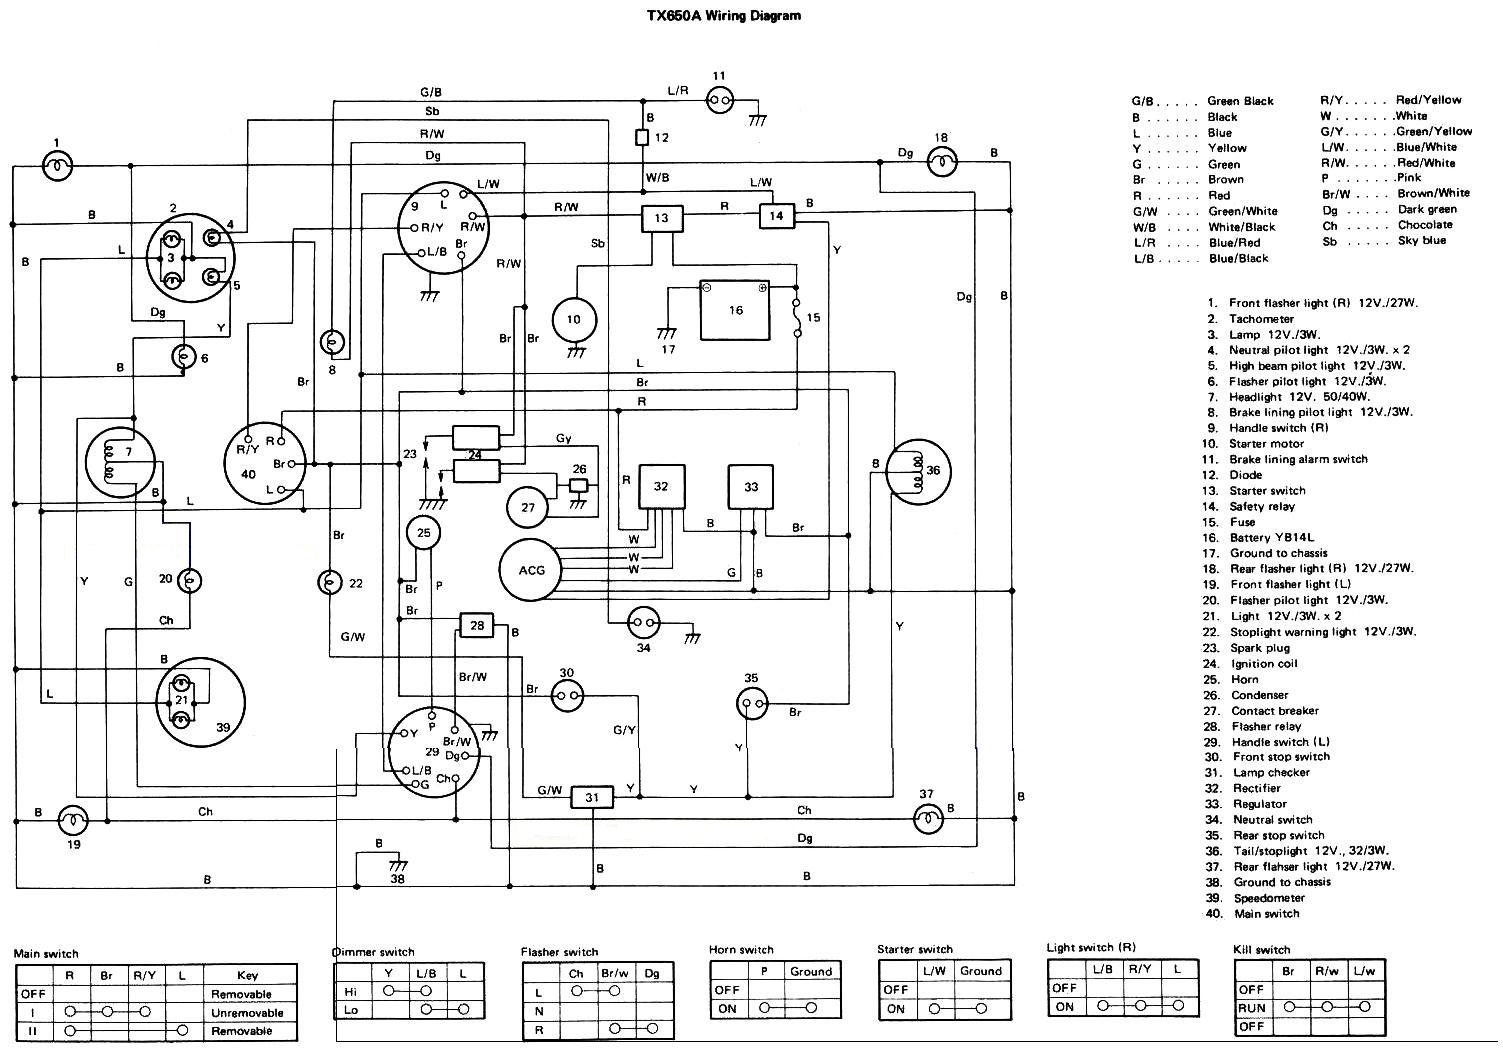 Tx A on Honda Cb360 Wiring Diagram